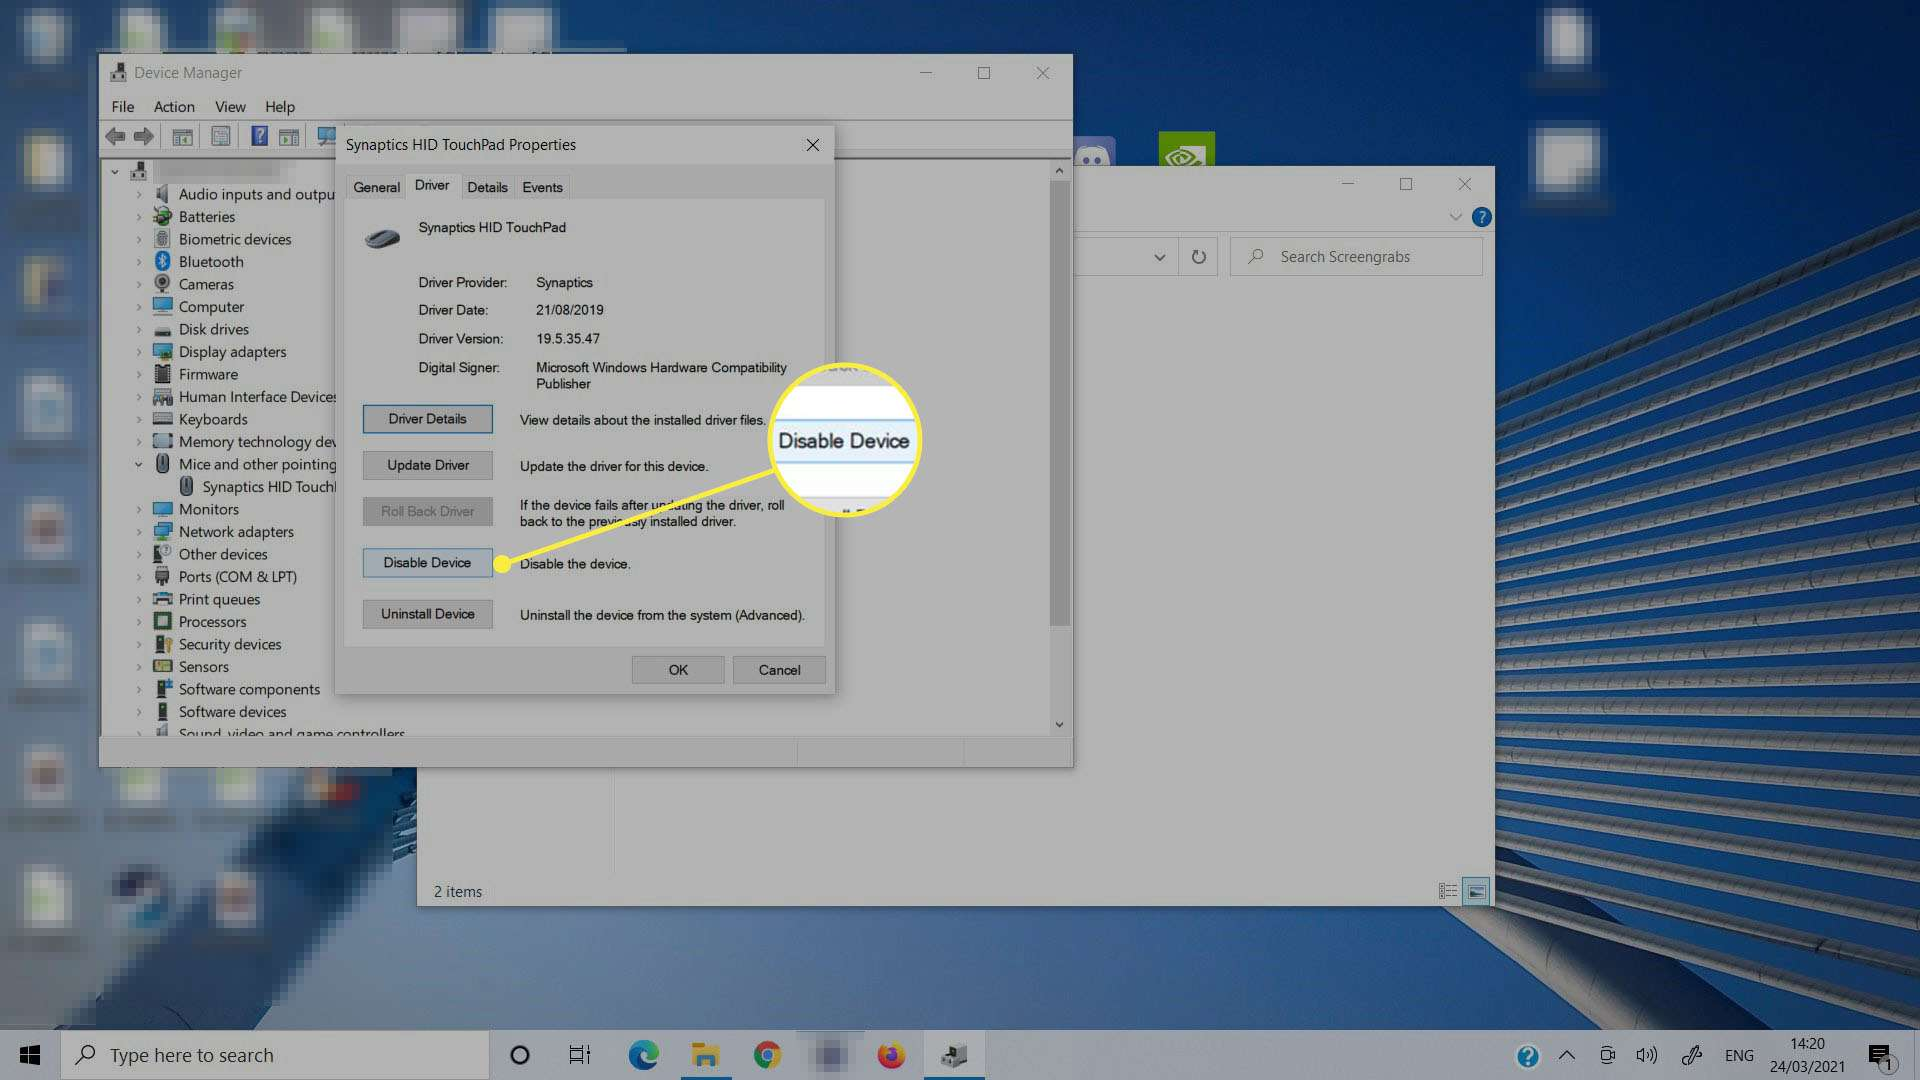 Selecting Disable Device in Device Manager.